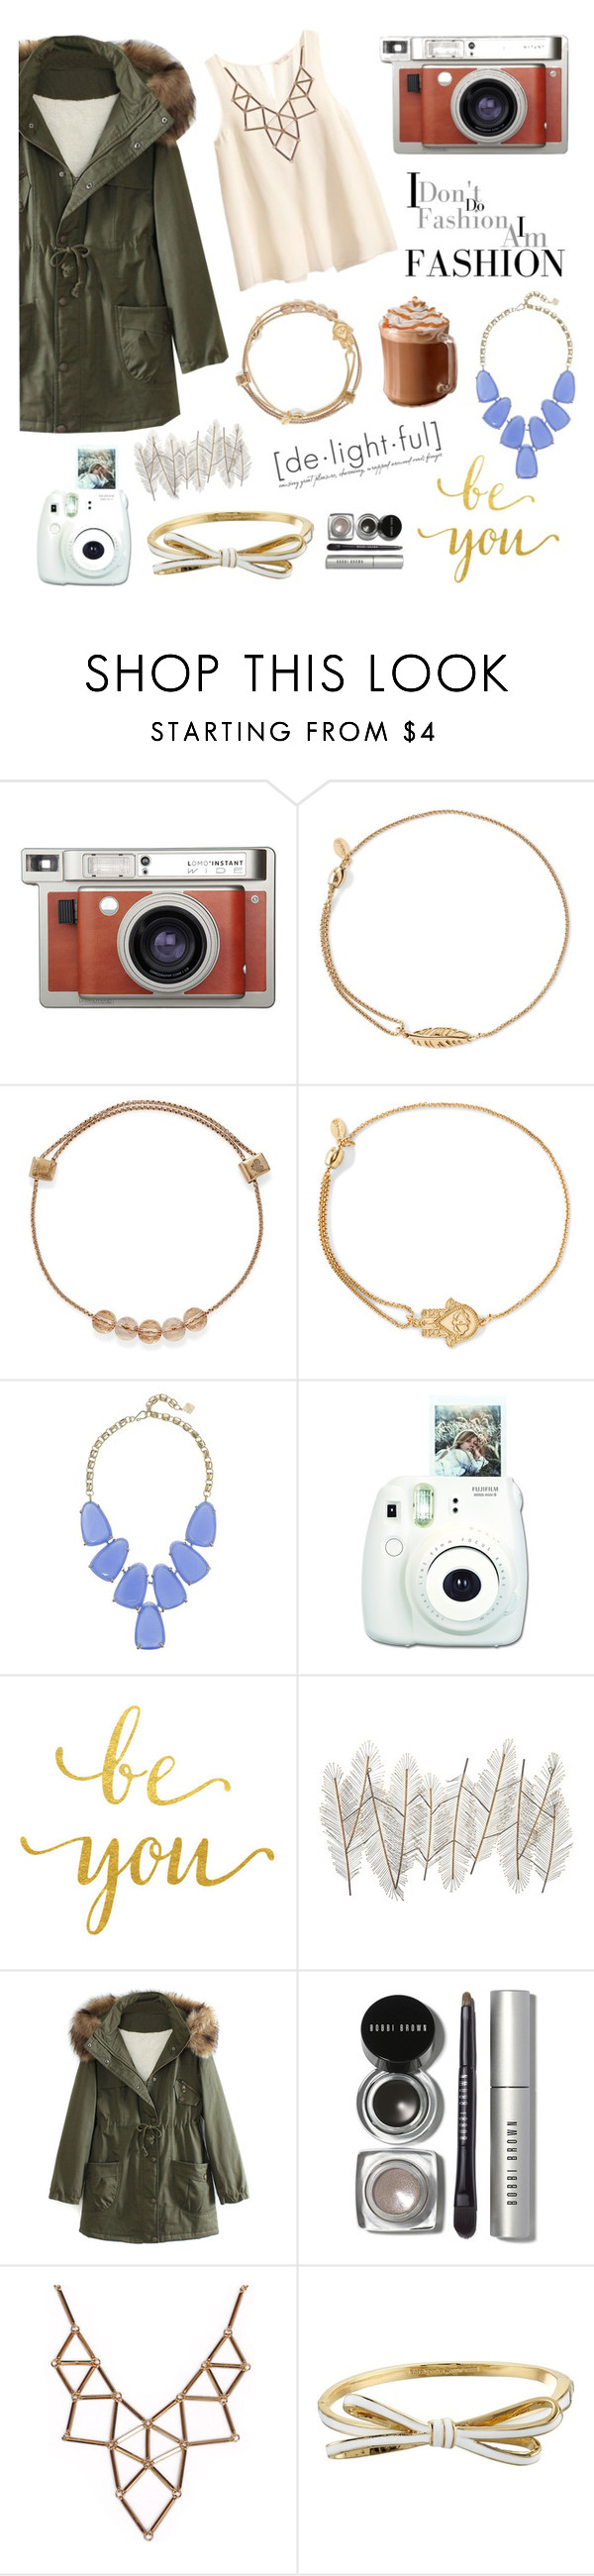 """""""I don't do fashion I am fashion"""" by abbyh8134 ❤ liked on Polyvore featuring H&M, Lomography, Alex and Ani, Kendra Scott, Universal Lighting and Decor, WithChic, Bobbi Brown Cosmetics, Chicnova Fashion, Kate Spade and women's clothing"""